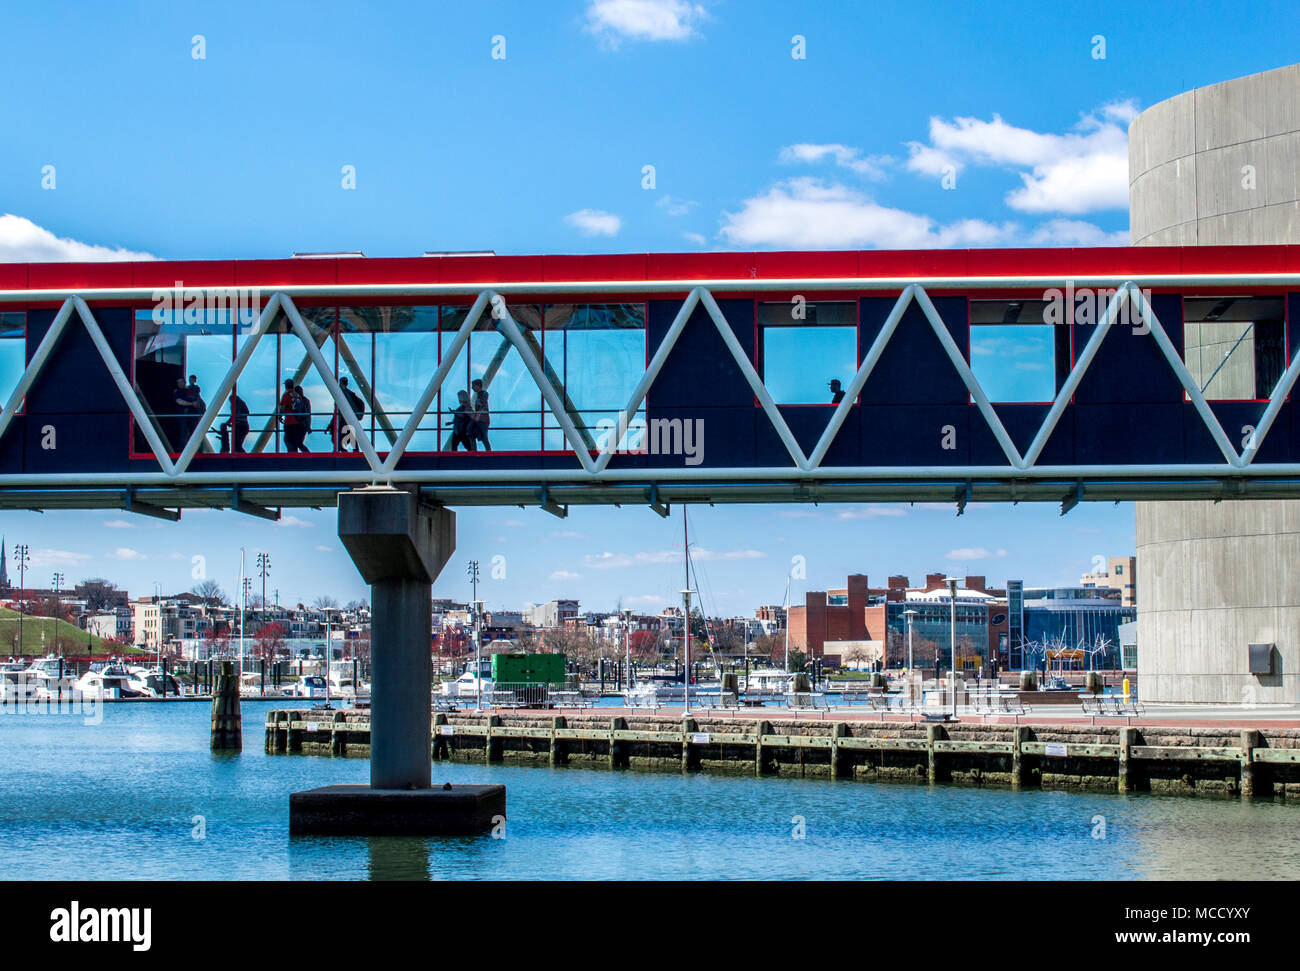 people strolling along the modern enclosed glass walkway going over Baltimore's Inner Harbor at the National Aquarium - Stock Image